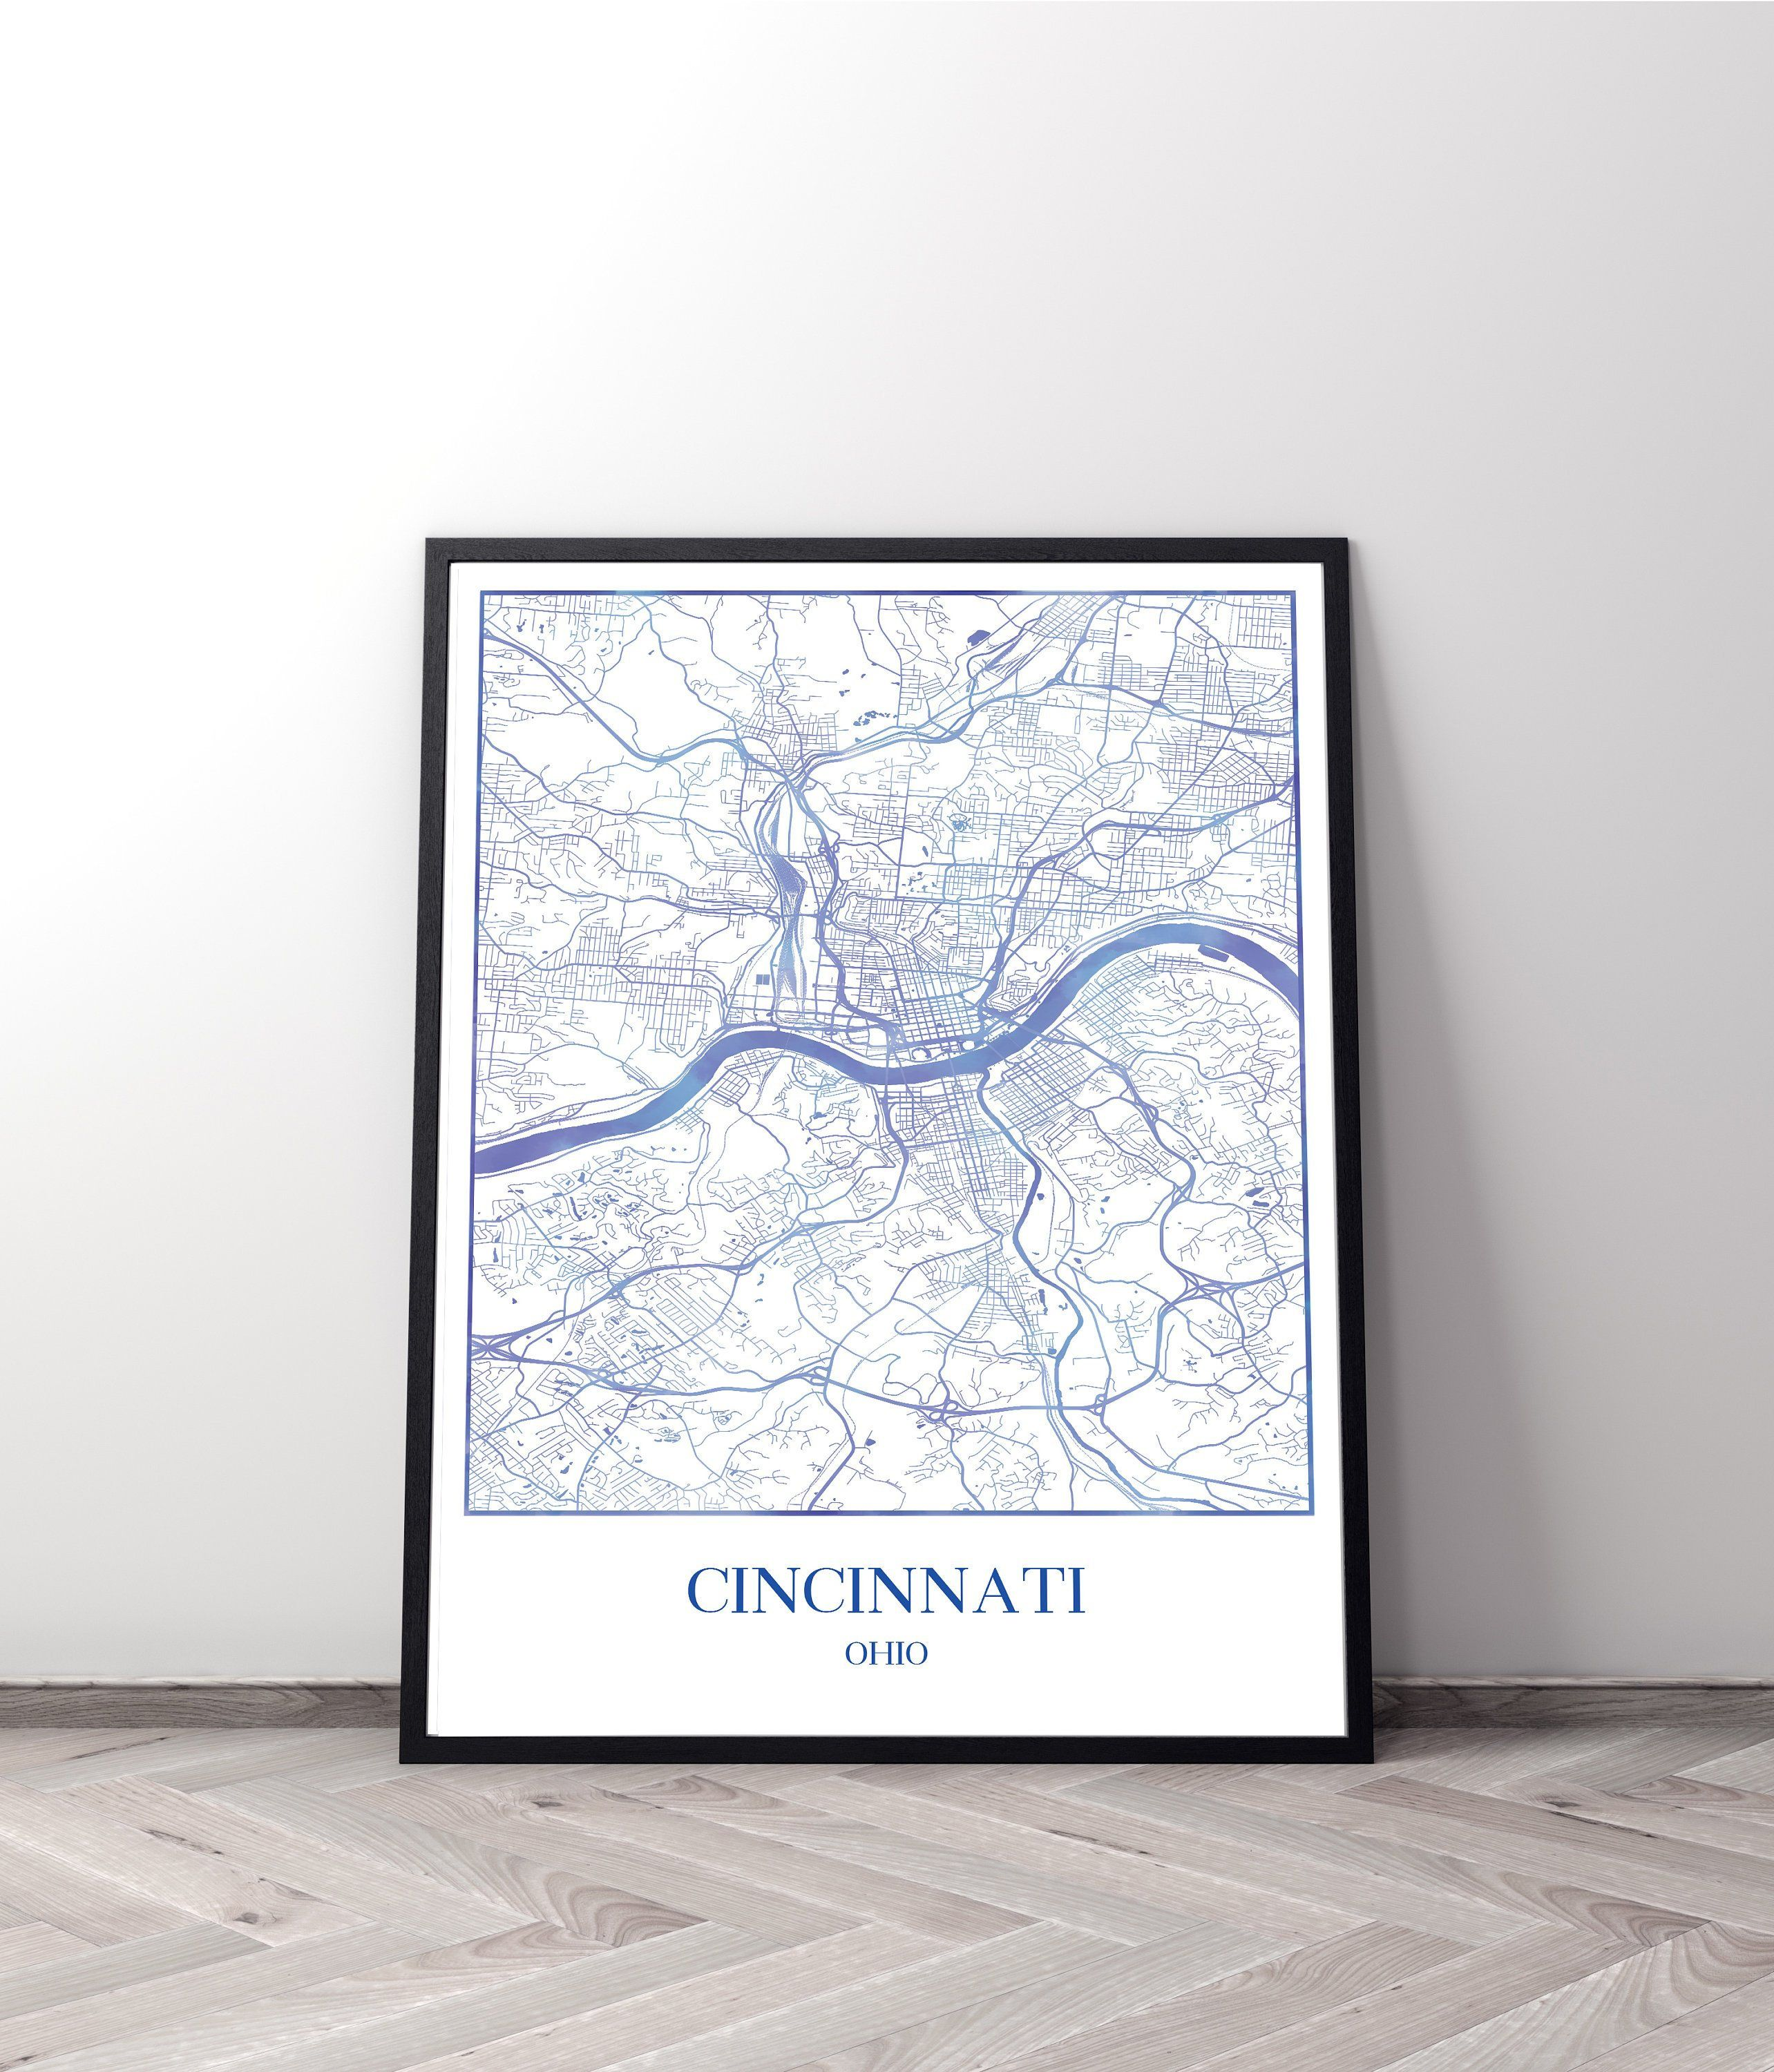 Map Of New York Ohio Area.Cincinnati Ohio Map Poster Personalized Gifts In 2019 Travel And